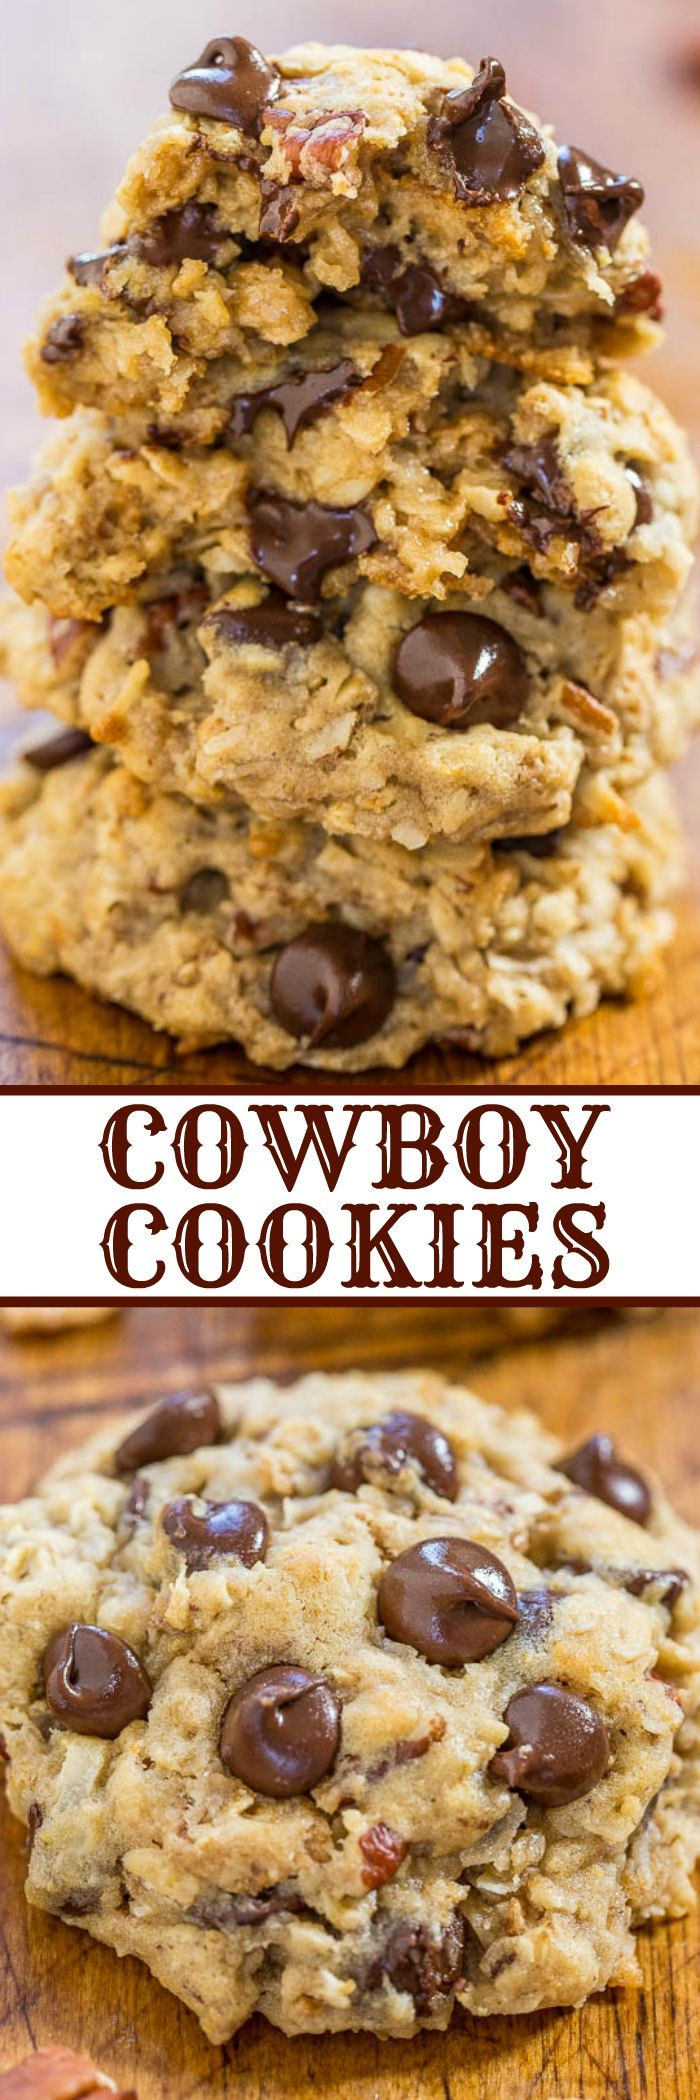 discount nike sneakers for kids Cowboy Cookies   Chewy oats  sweet coconut  crunchy pecans  and plenty of chocolate  Hearty with tons of texture and they stay soft and chewy   Everyone  not just cowboys  loves these cookies